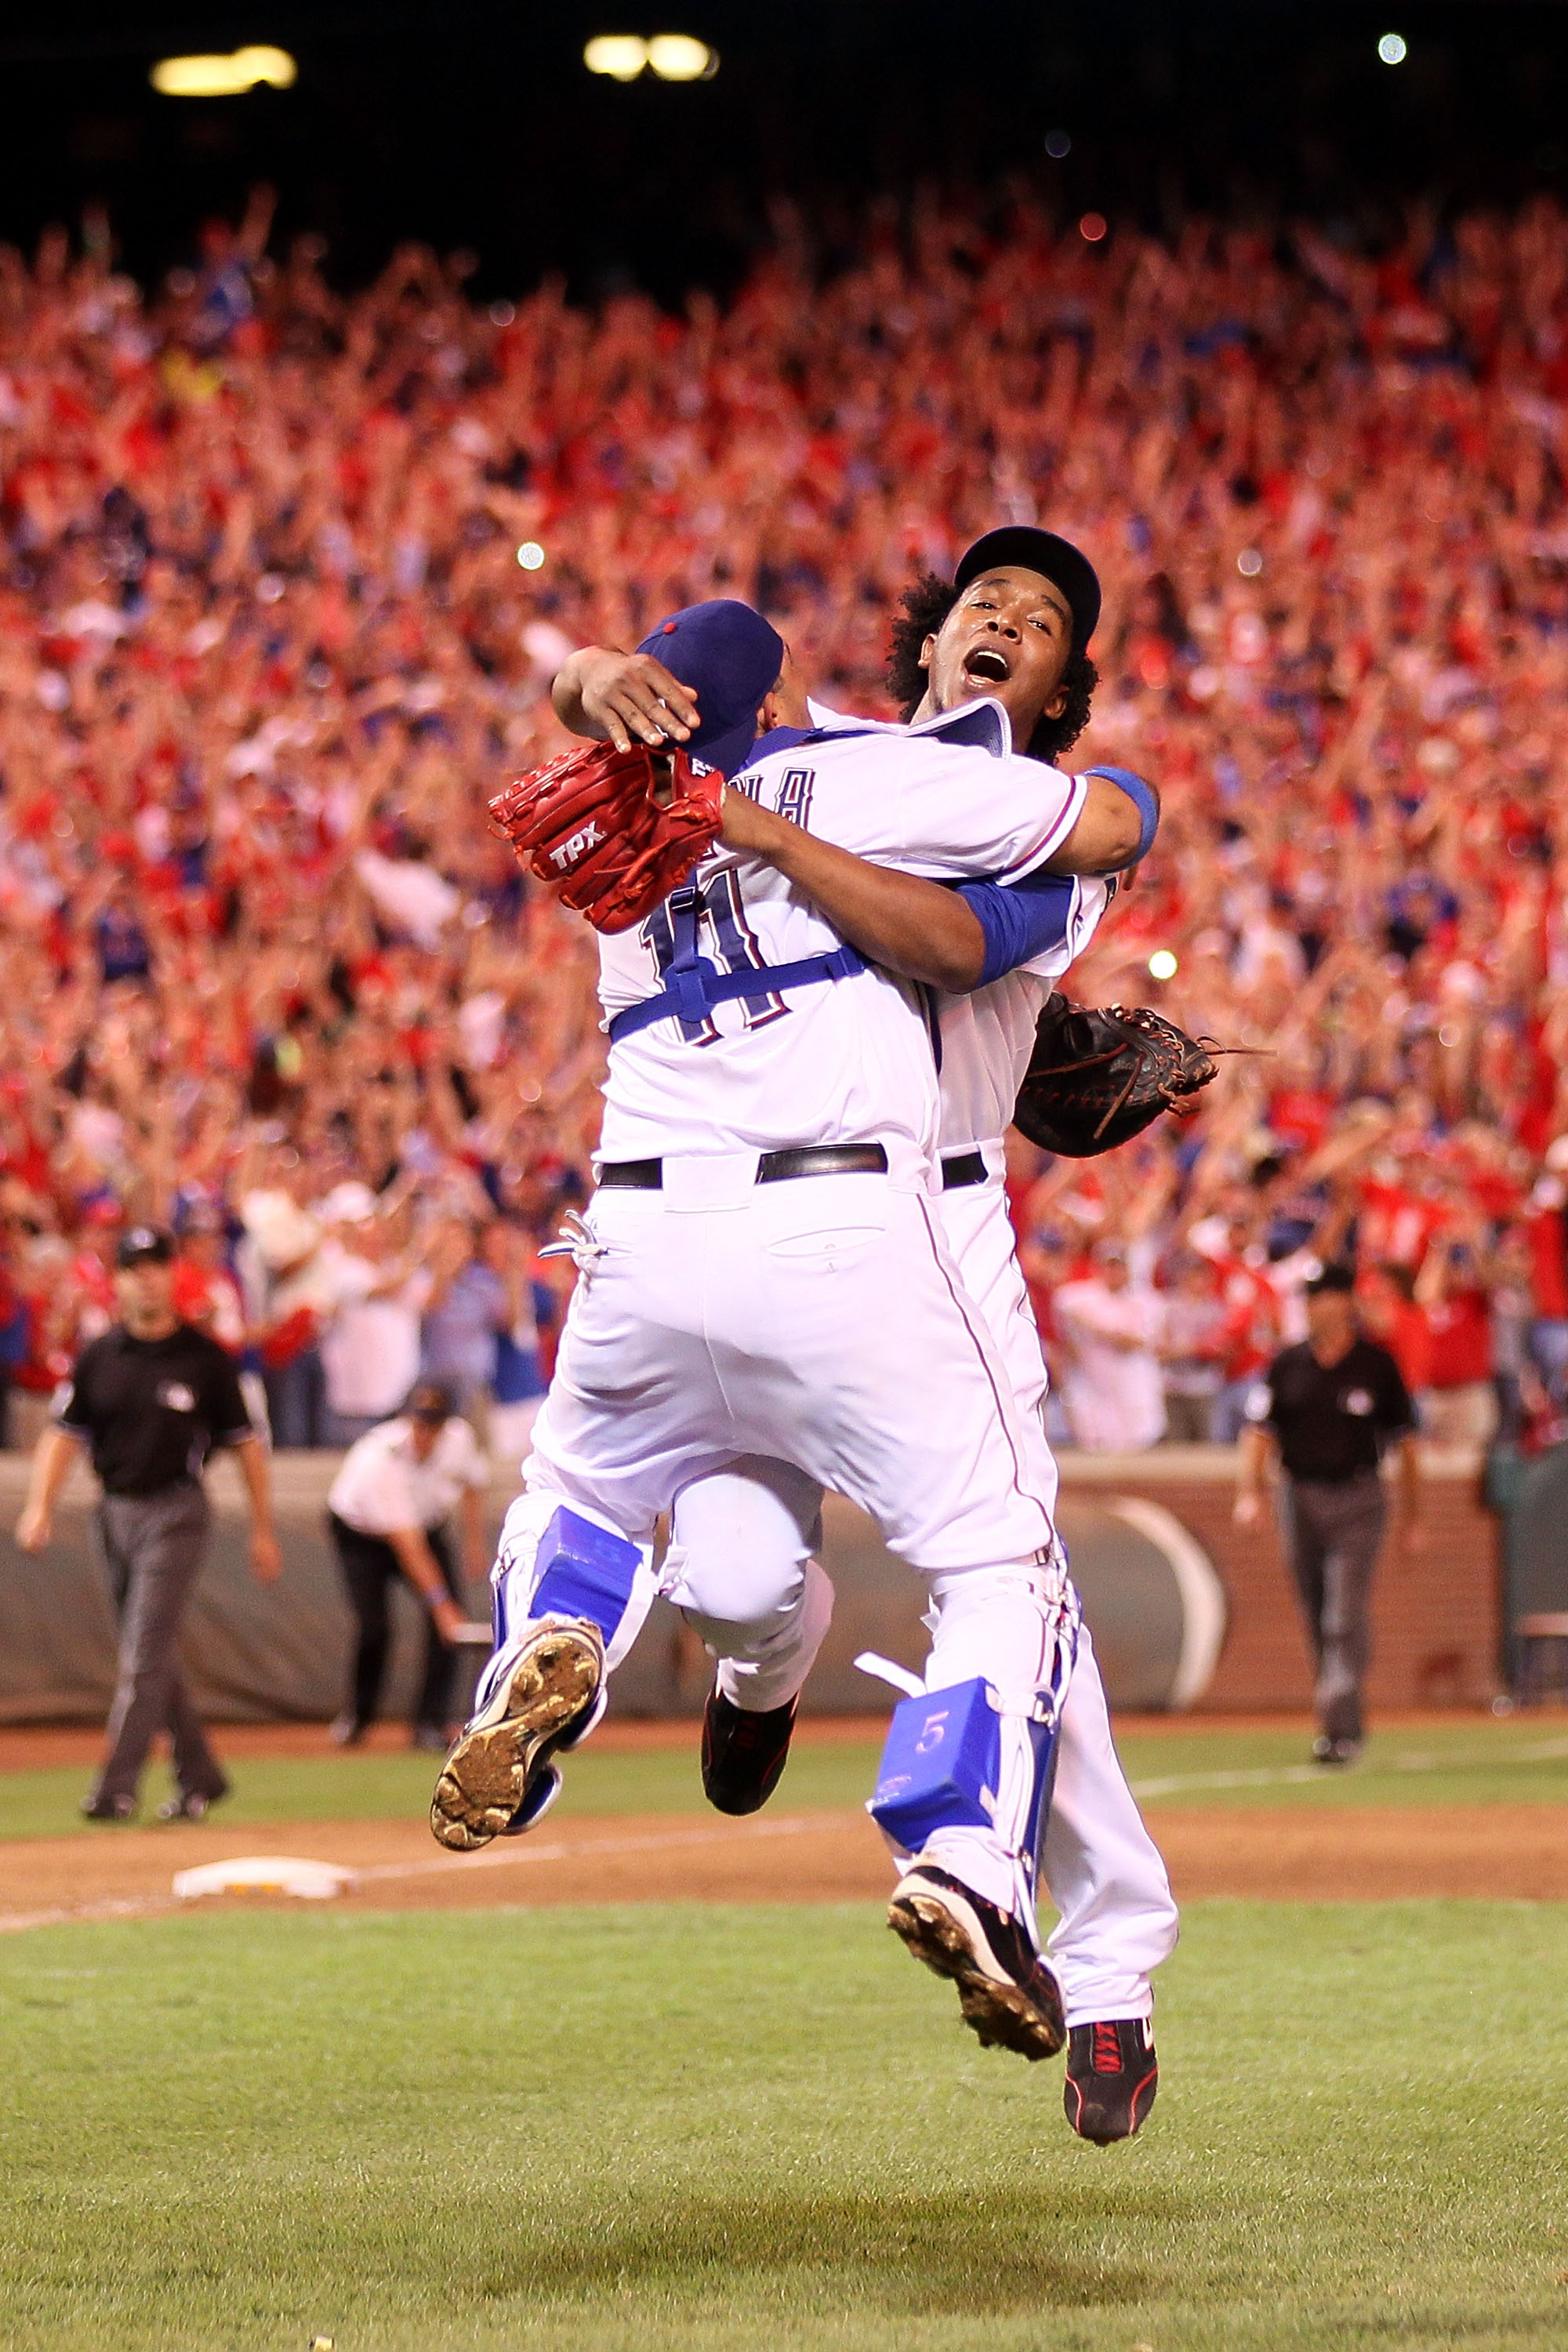 ARLINGTON, TX - OCTOBER 22:  Bengie Molina #11 and Neftali Feliz #30 of the Texas Rangers celebrate after defeating the New York Yankees 6-1 in Game Six of the ALCS to advance to the World Series during the 2010 MLB Playoffs at Rangers Ballpark in Arlingt